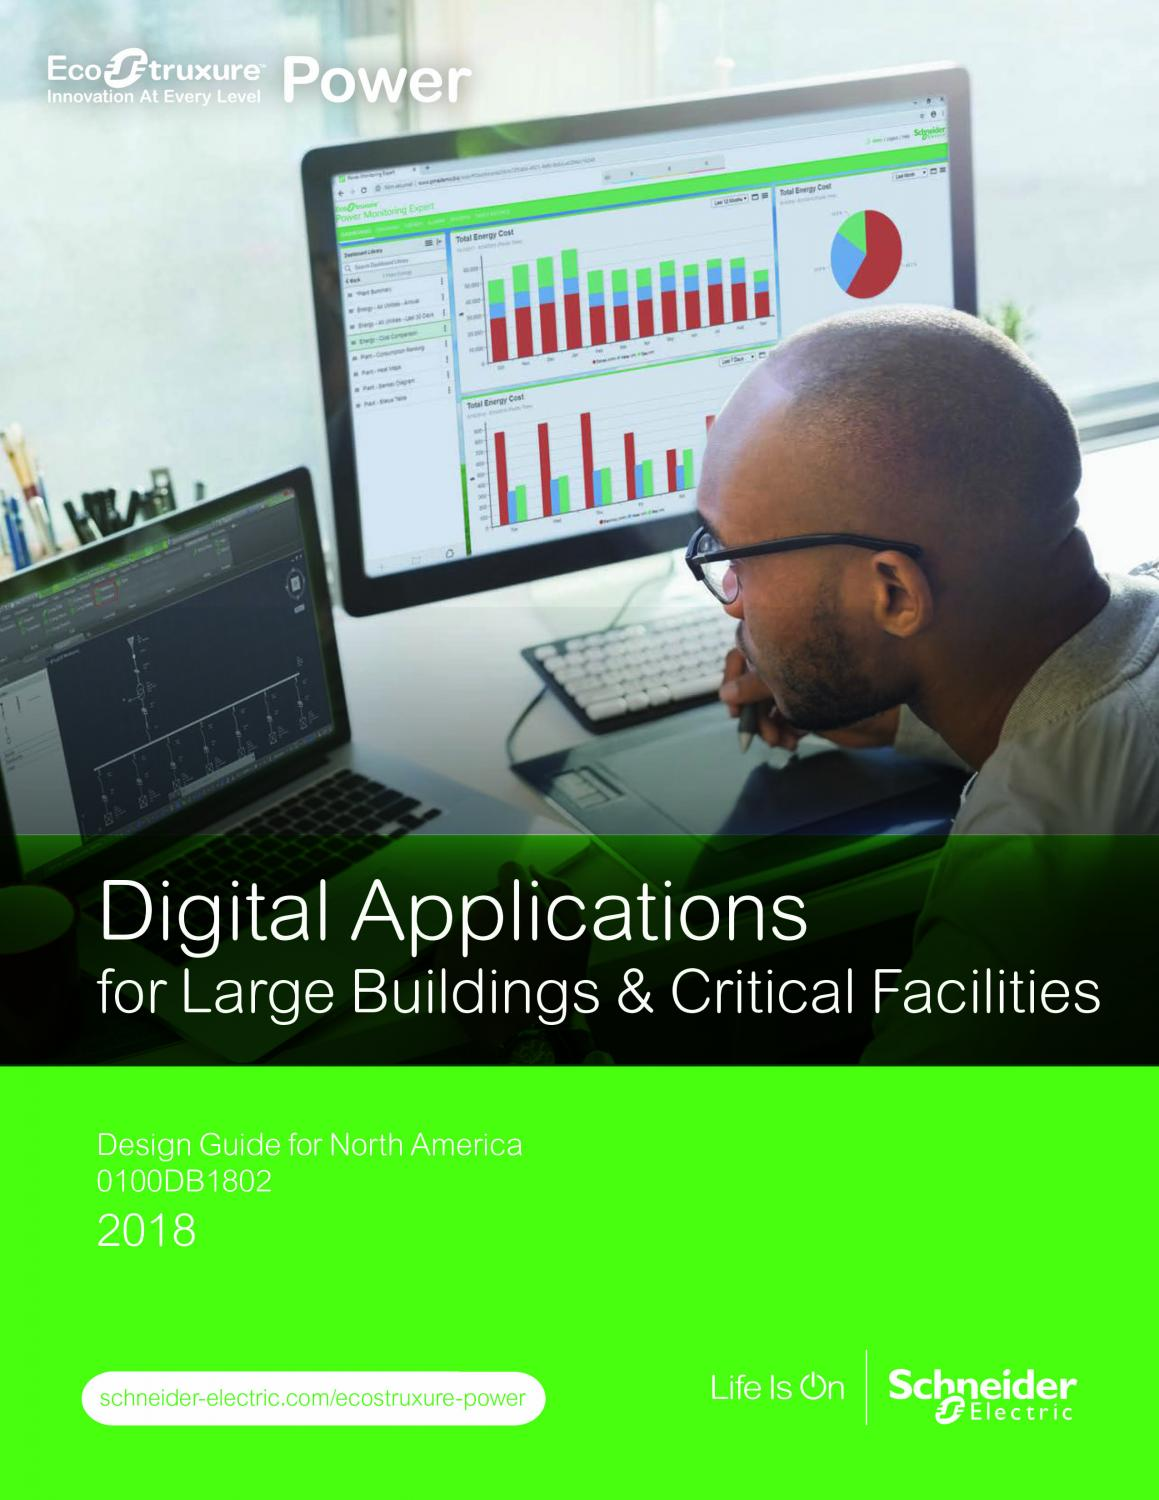 Digital Applications for Large Building & Critical Facilities